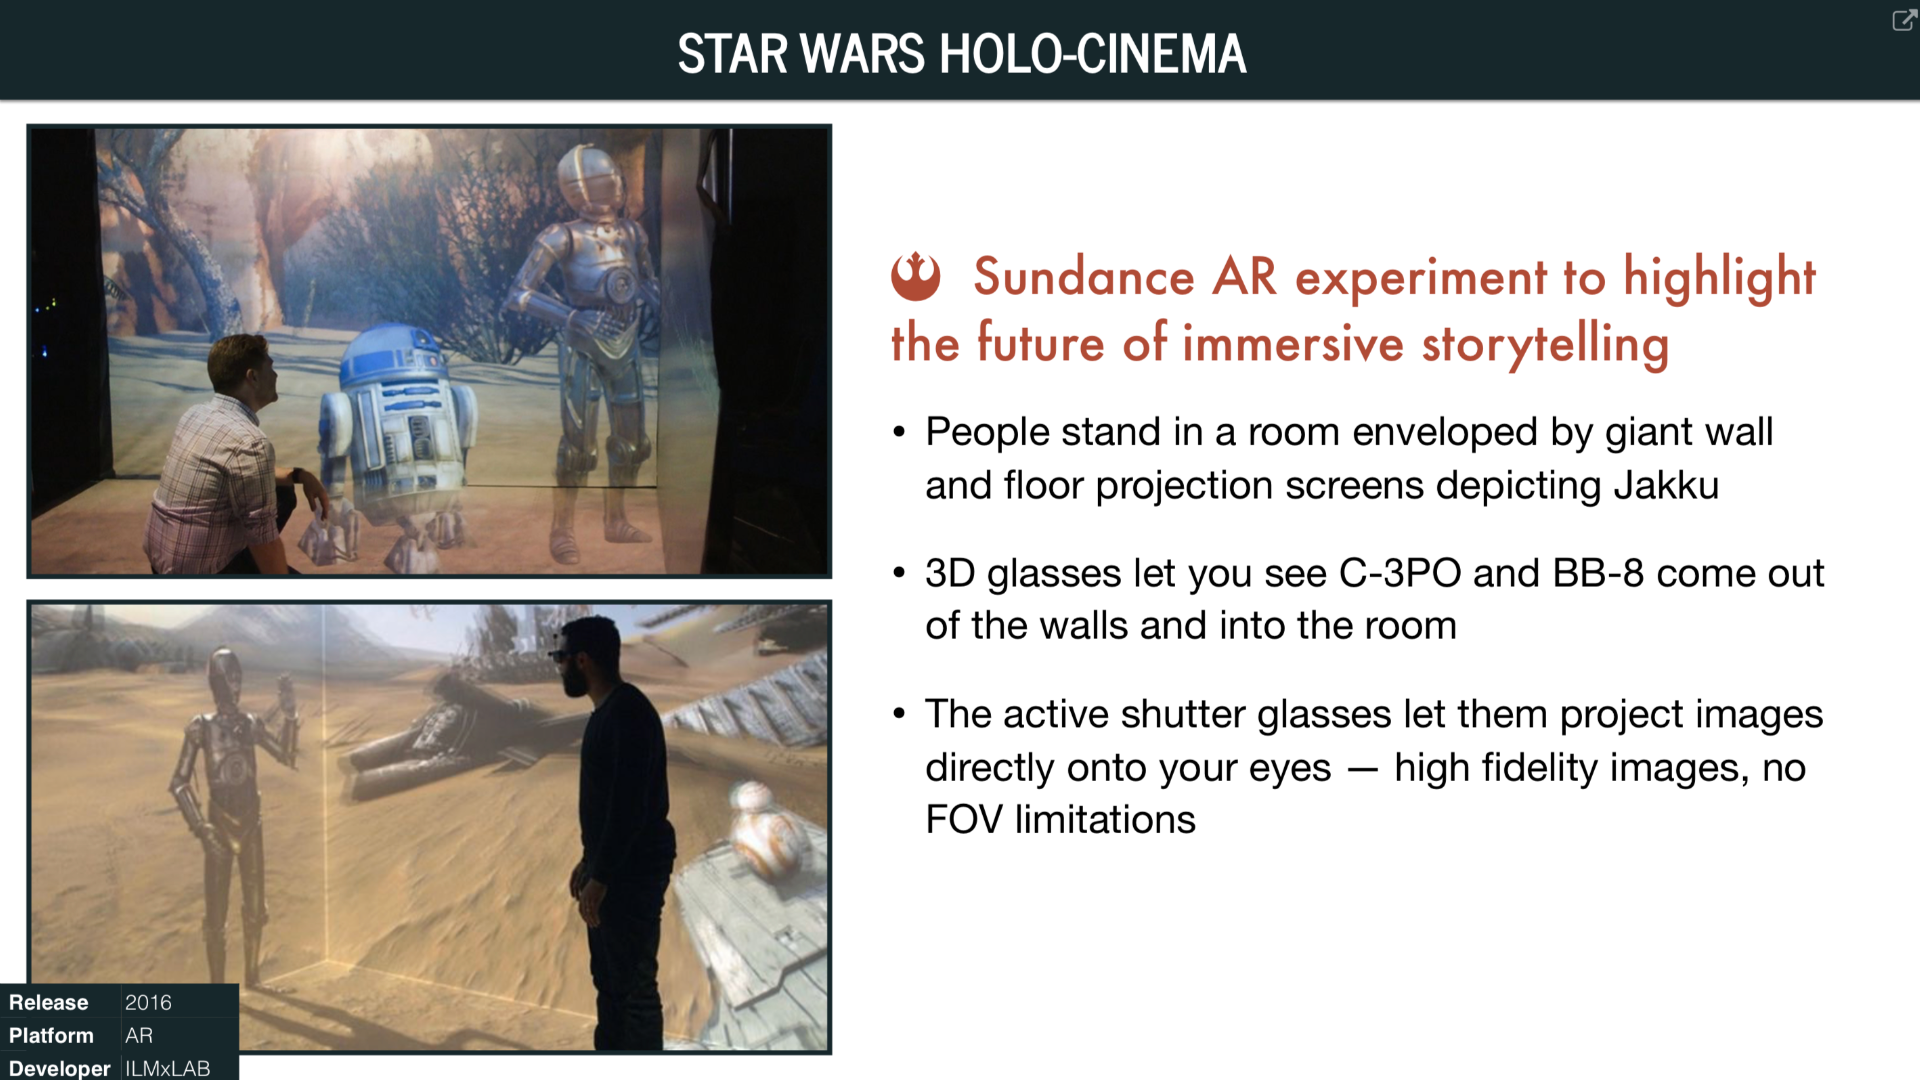 Overview of Star Wars Holo-Cinema (2016)